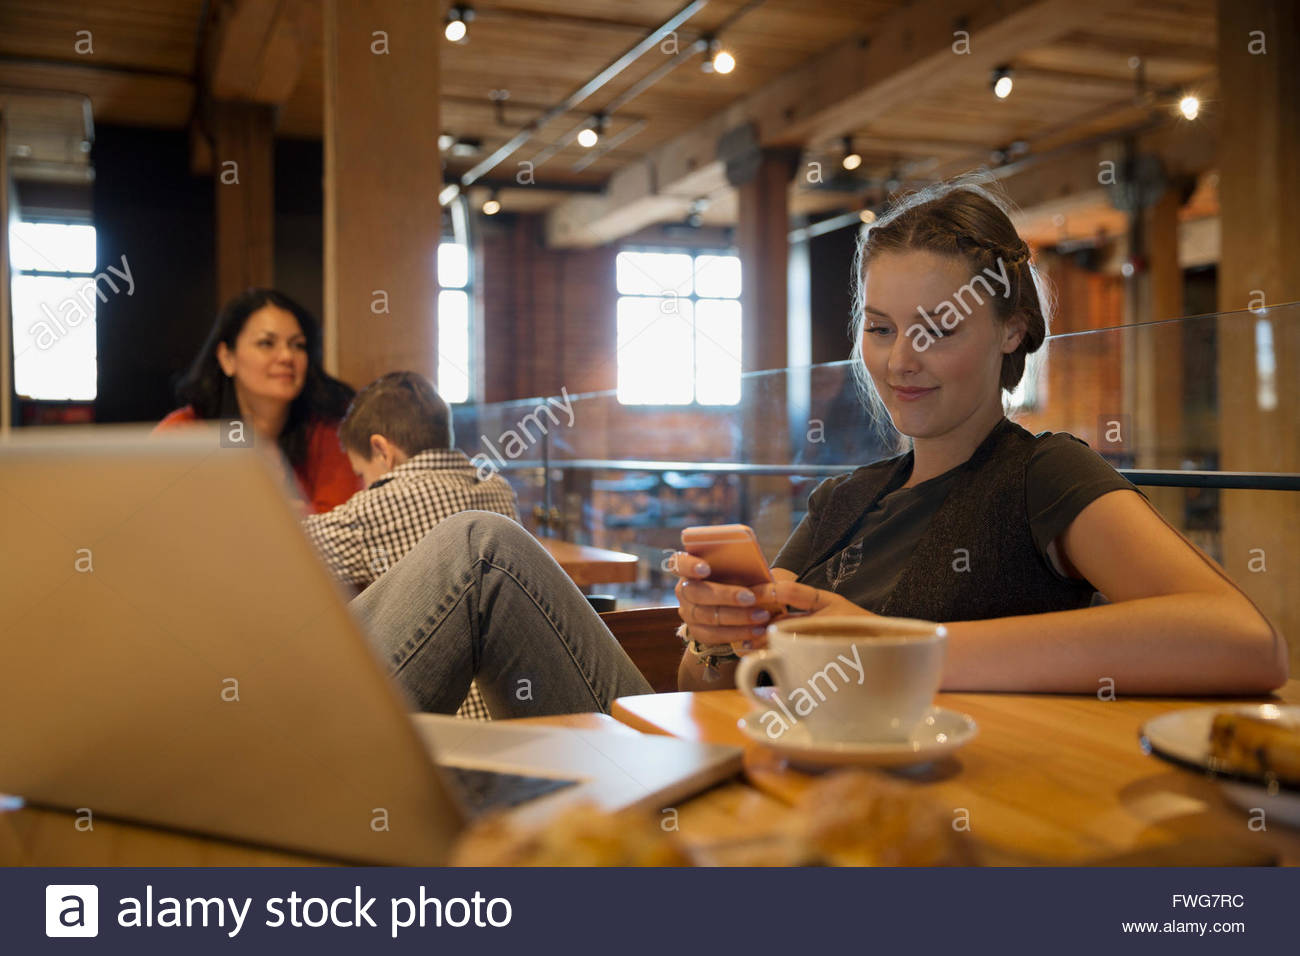 Young woman texting at laptop in cafe Stock Photo